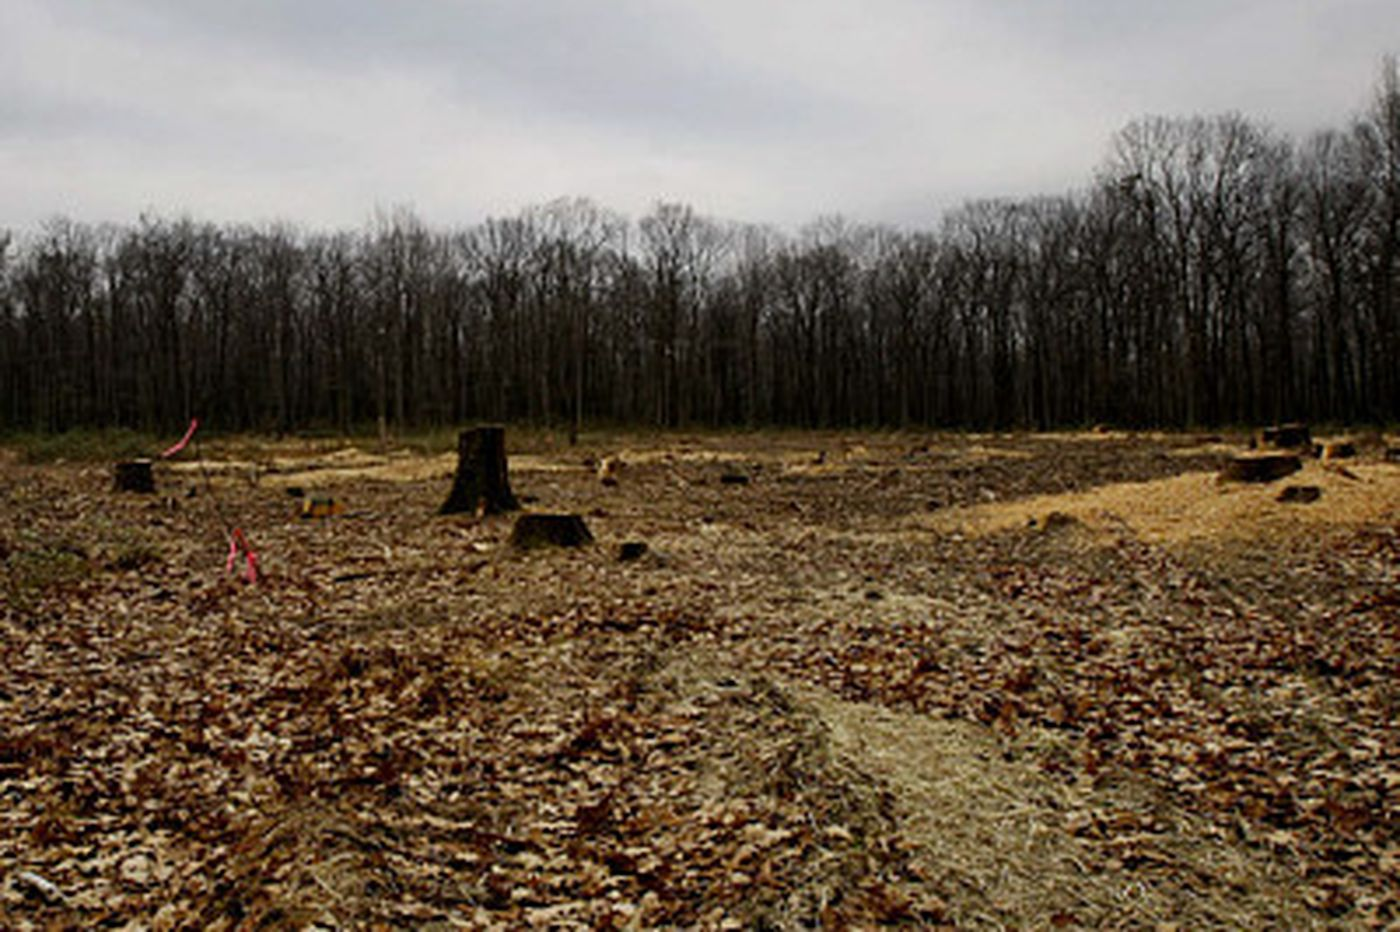 Activists push Pa. to restrict drilling in tract